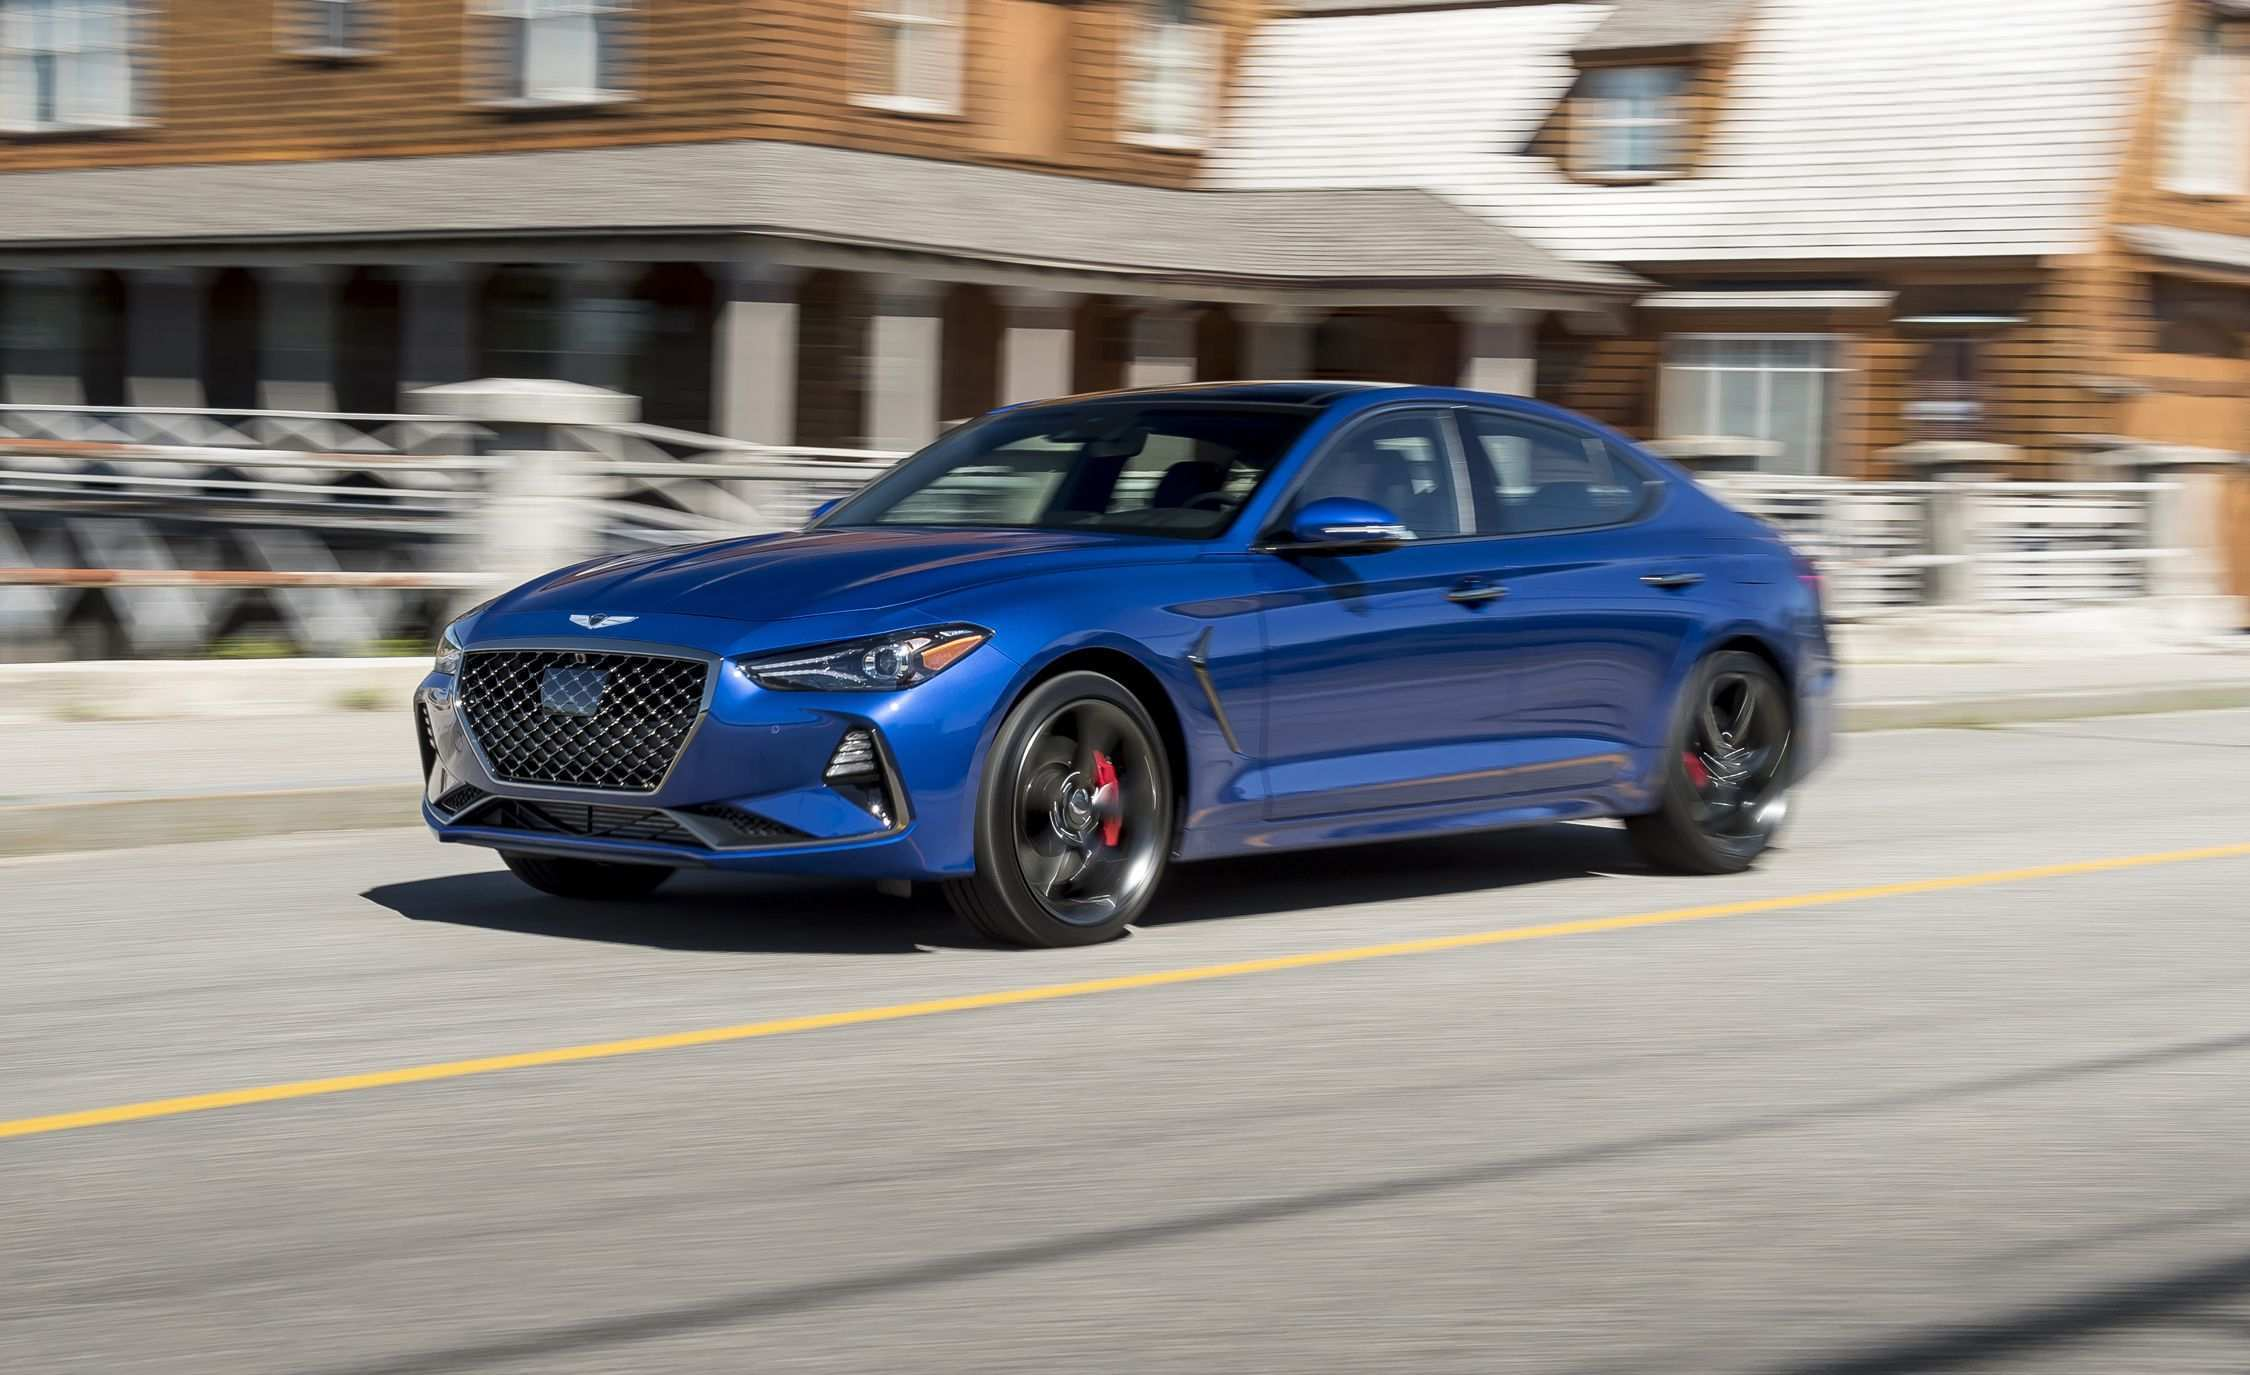 87 Best Review 2019 Genesis Cars Pictures for 2019 Genesis Cars